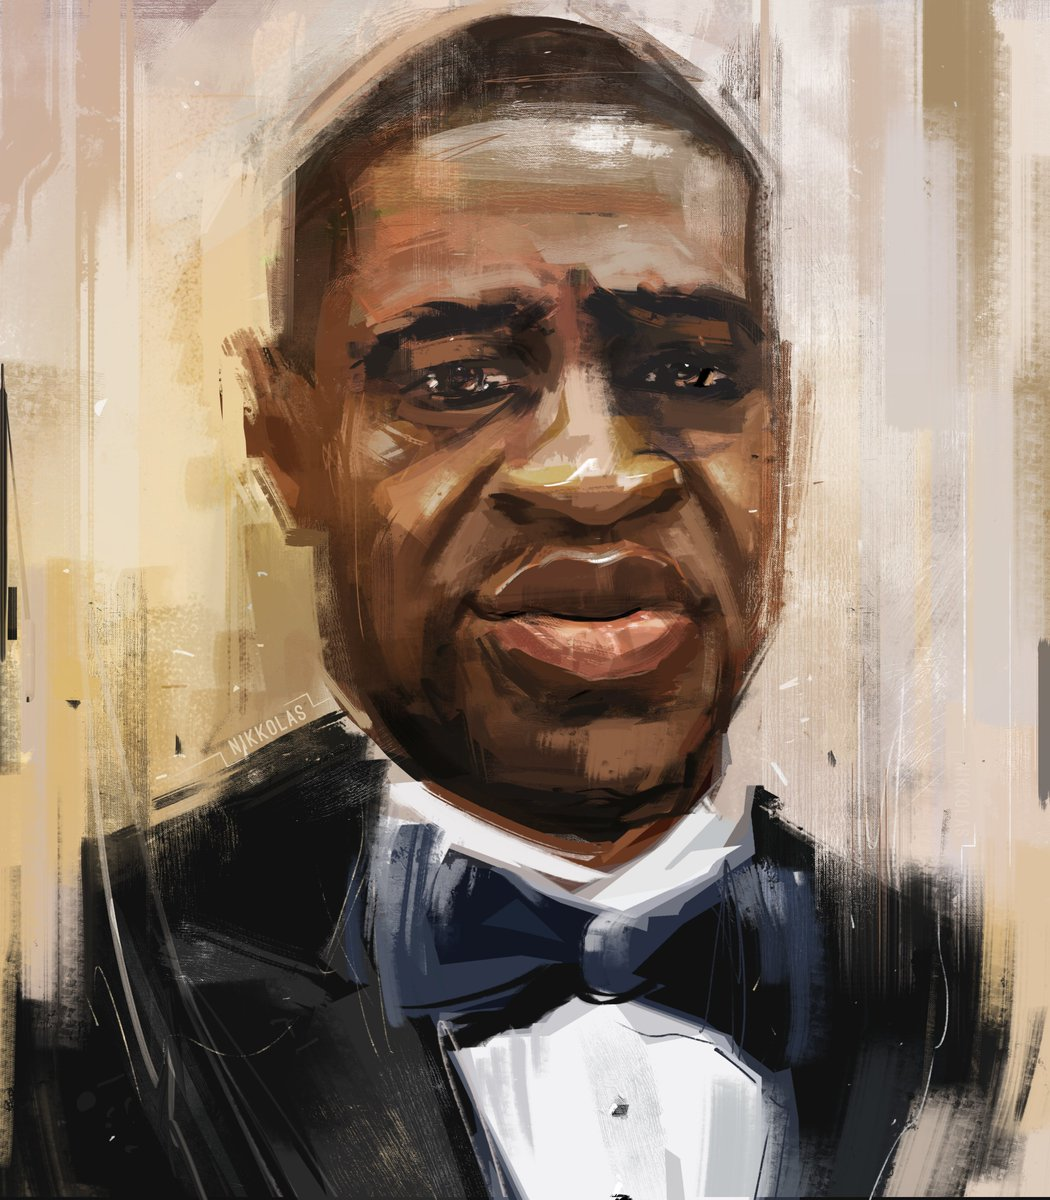 In our new episode of The New Arab Voice we interviewed the talented @4NIKKOLAS on how art can contribute to the #BlackLivesMatter movement and challenge oppression. His portrait of #GeorgeFloyd has touched the hearts of many.   Tune in here: https://bit.ly/309wWNjpic.twitter.com/RtduNS2kYg